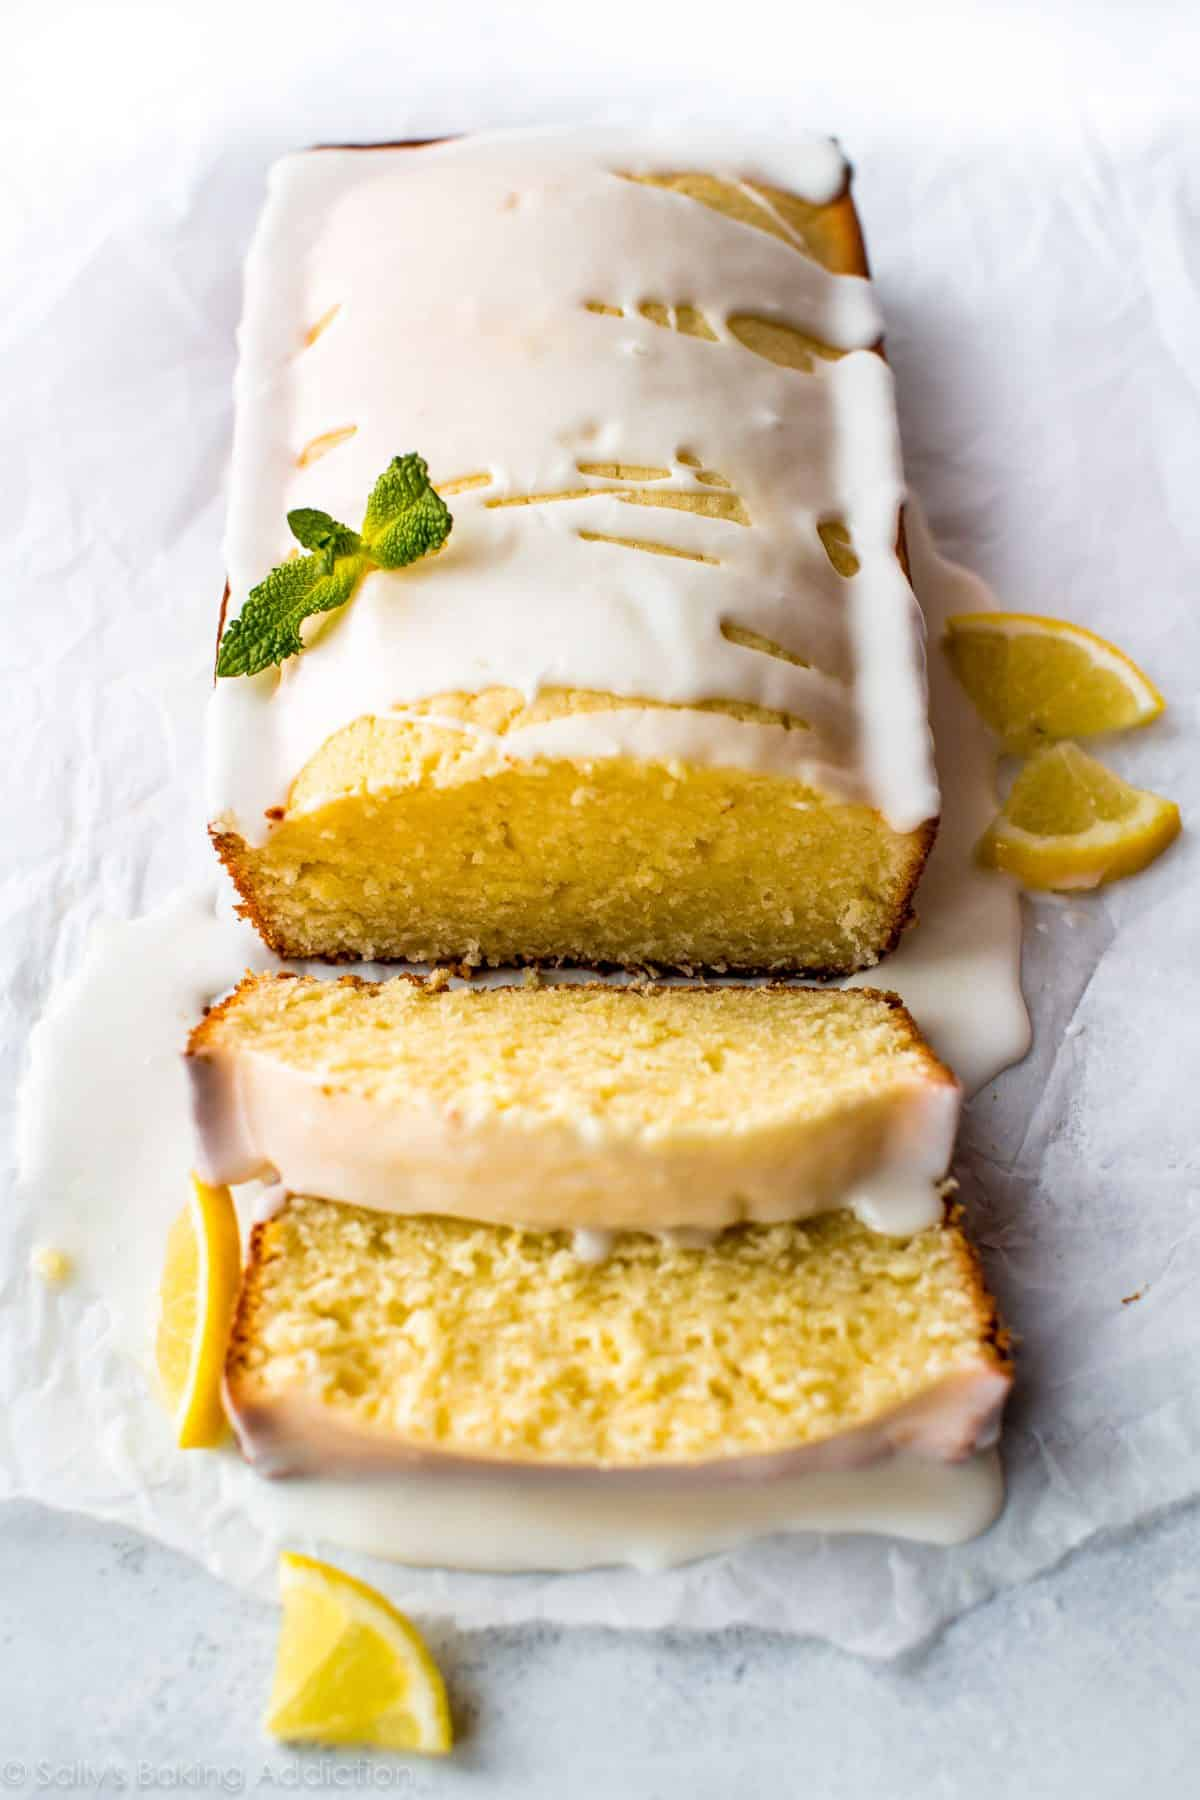 Recipes for lemon cakes with lemon icing